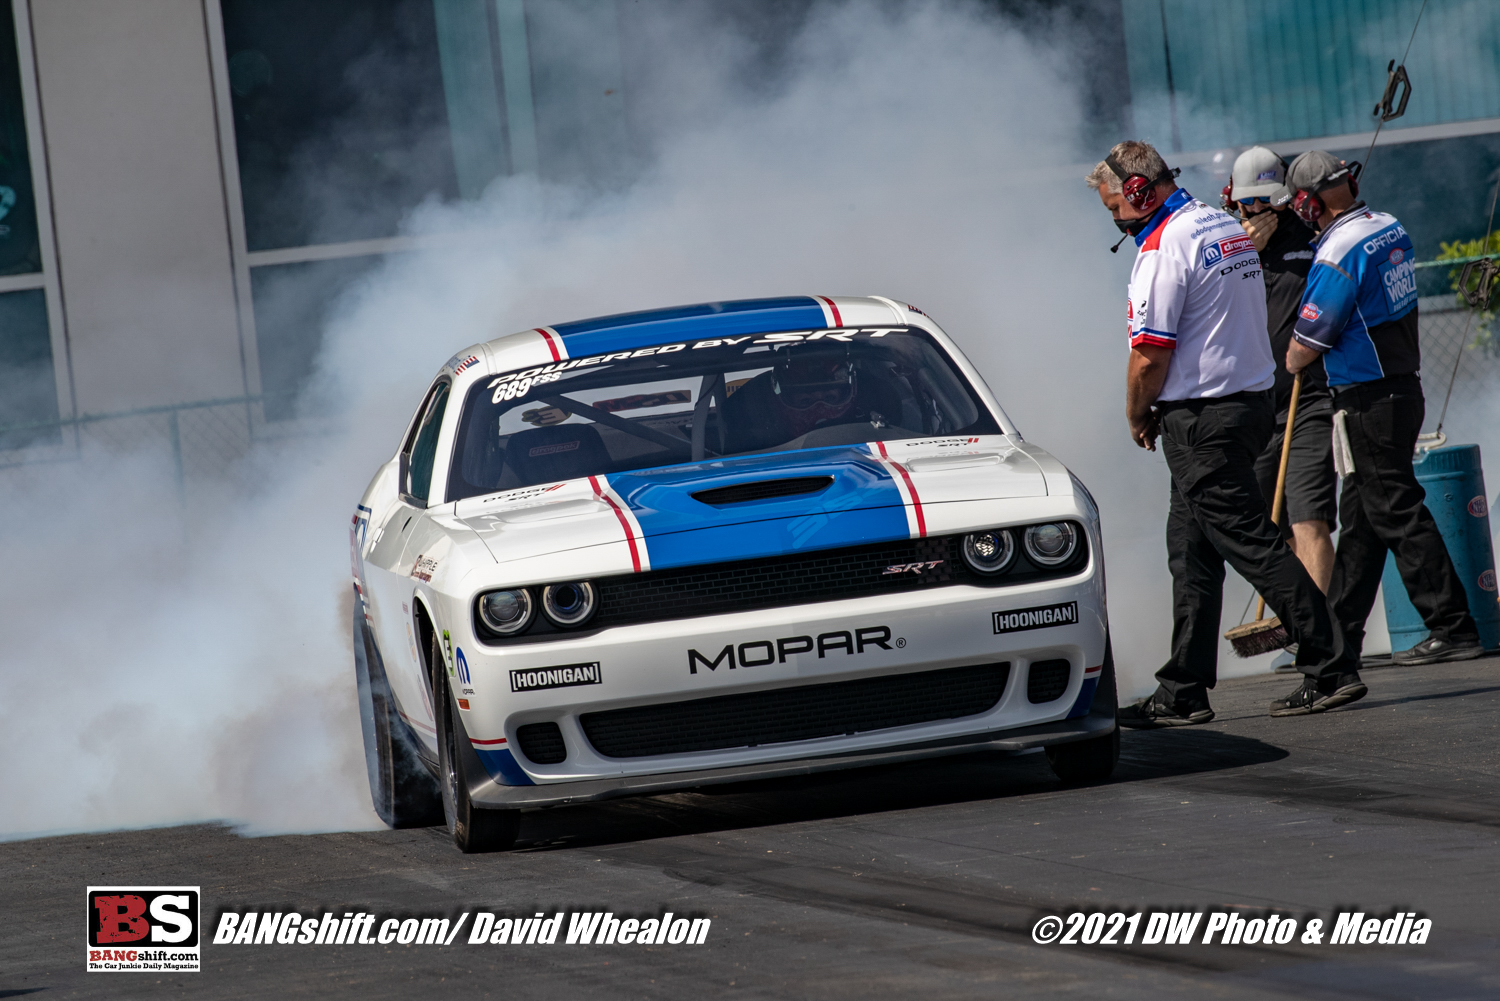 2021 NHRA Gatornationals Action Photos: Sportsman Cars, Factory Stock Showdown, Alcohol Cars and More!